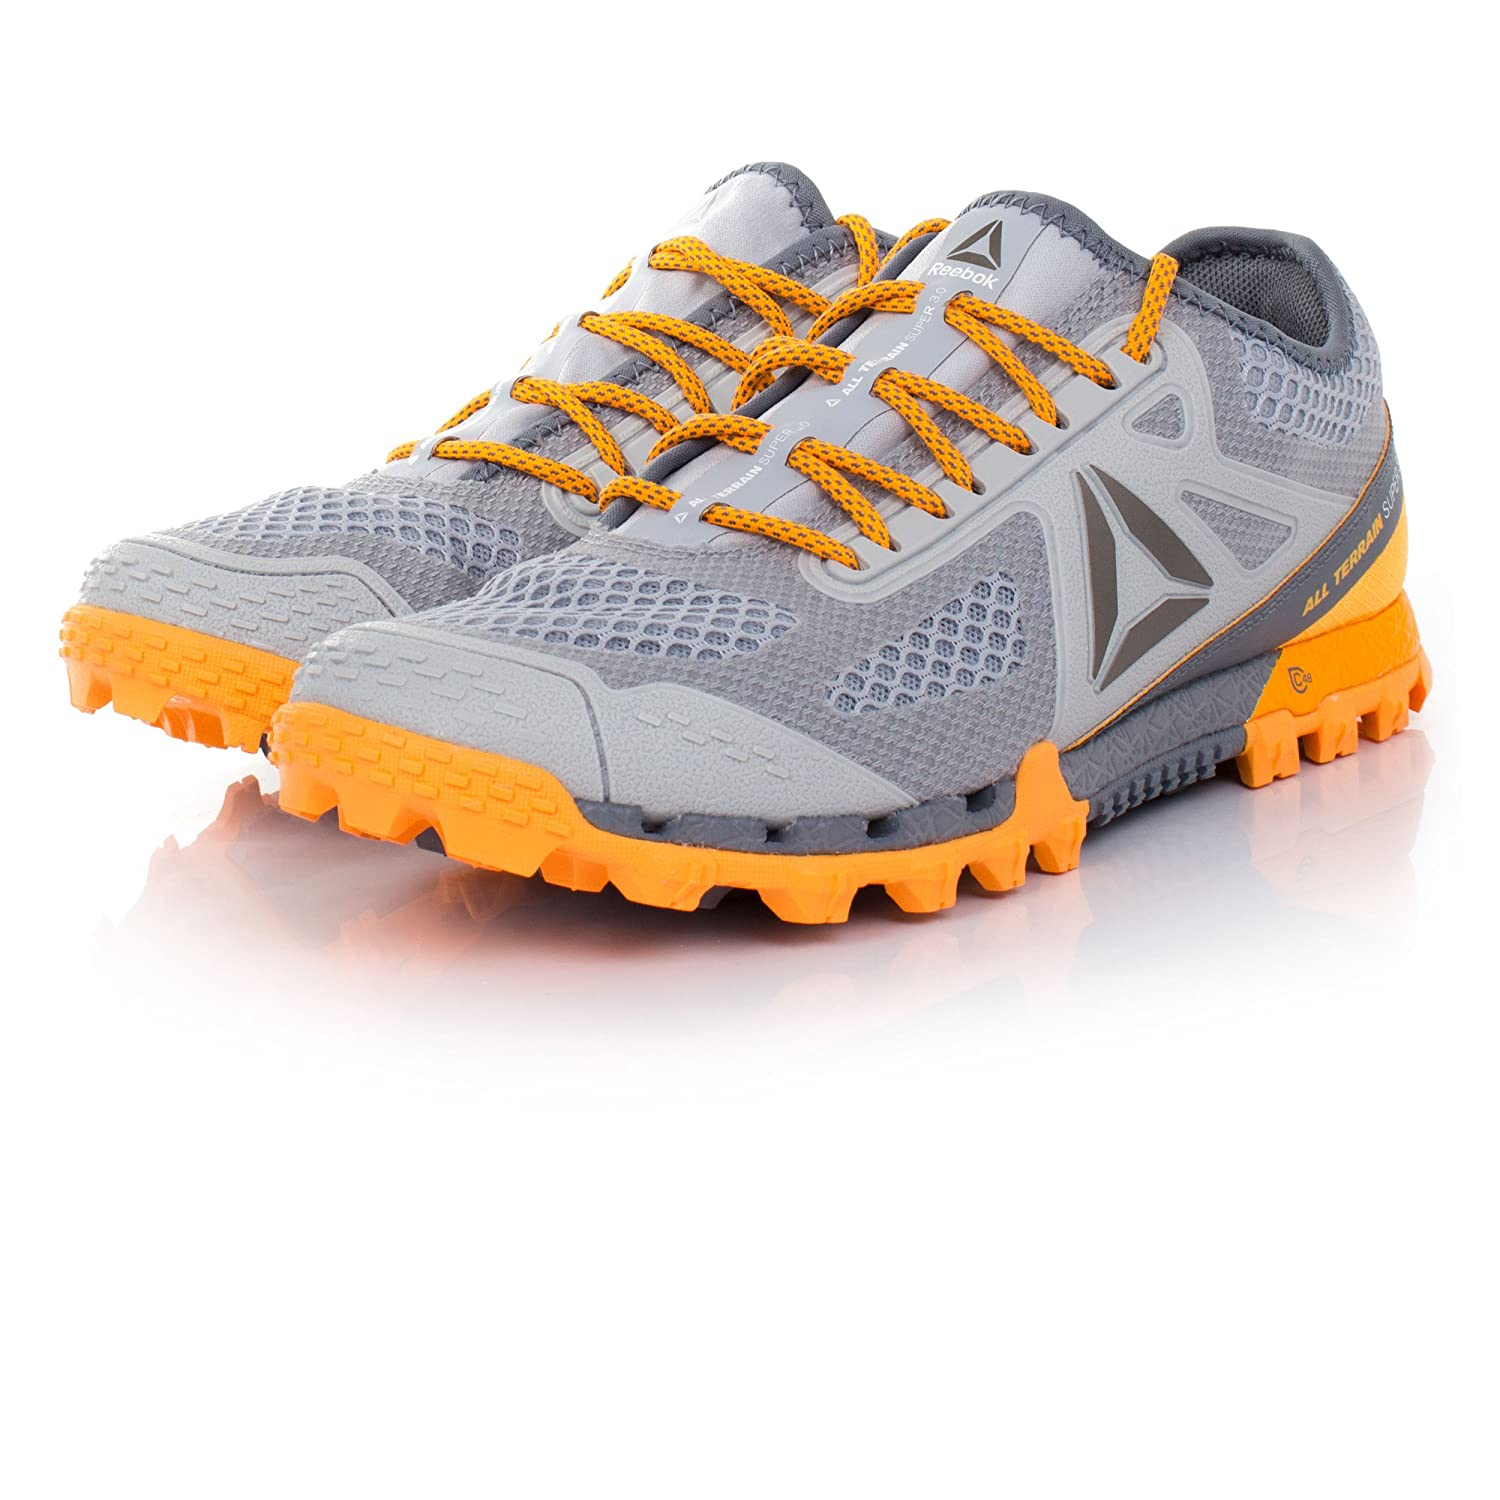 210ed9af0c2 Reebok Women s Bd4635 Trail Running Shoes  Amazon.co.uk  Shoes   Bags